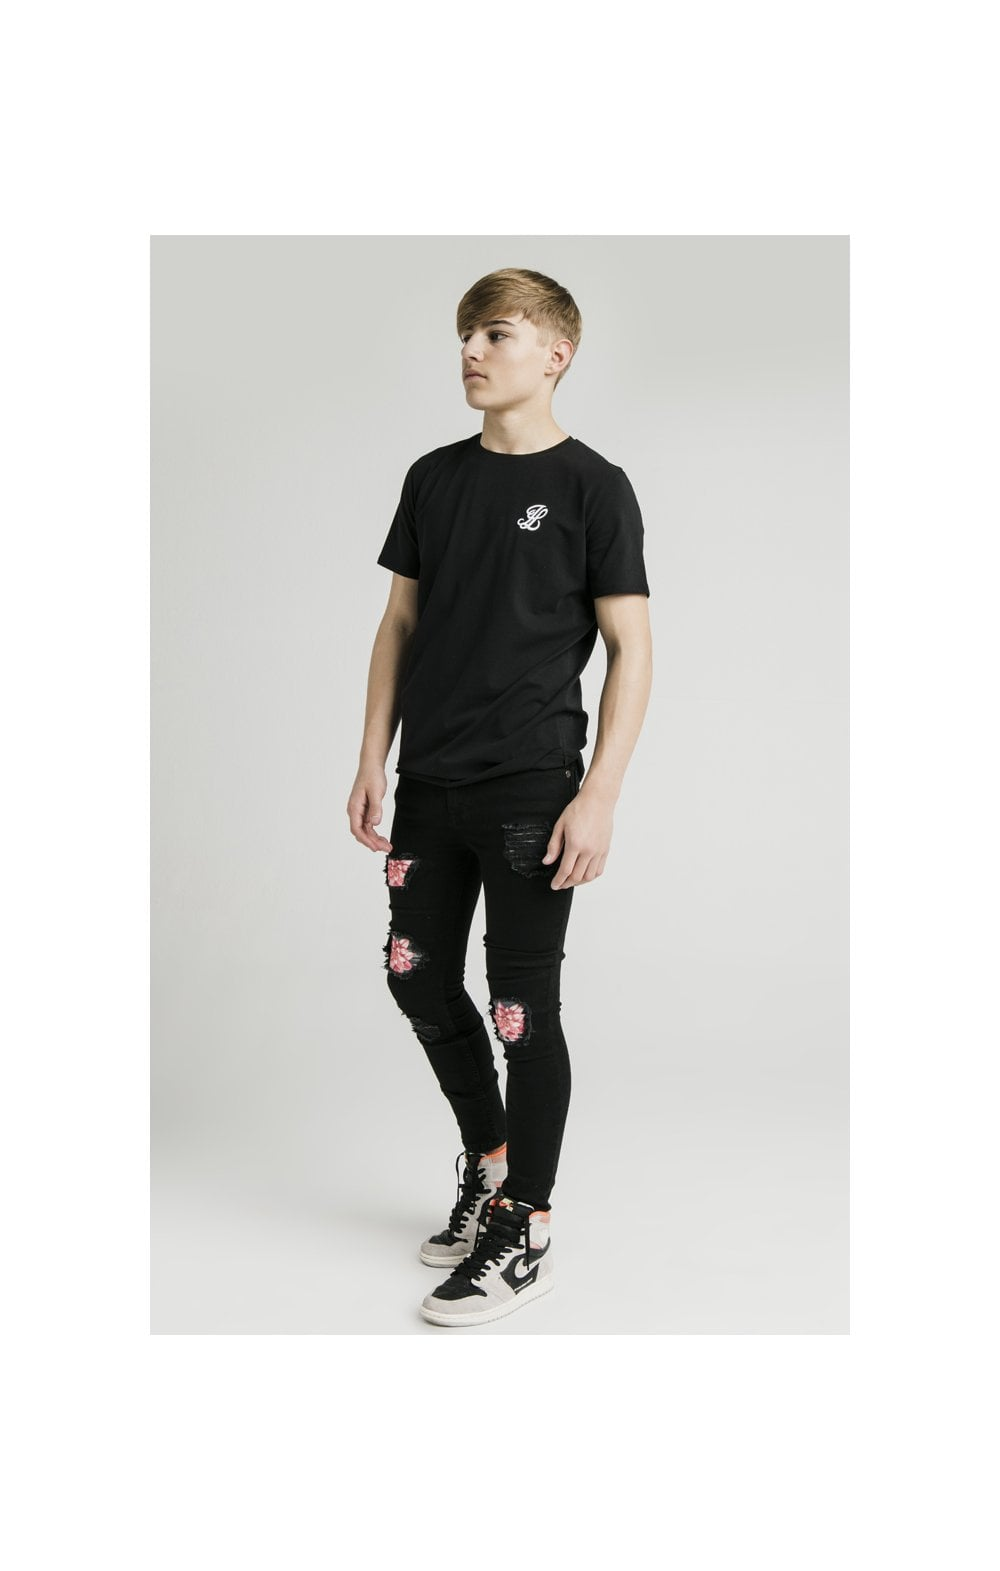 Illusive London S/S Core Tee - Black (3)